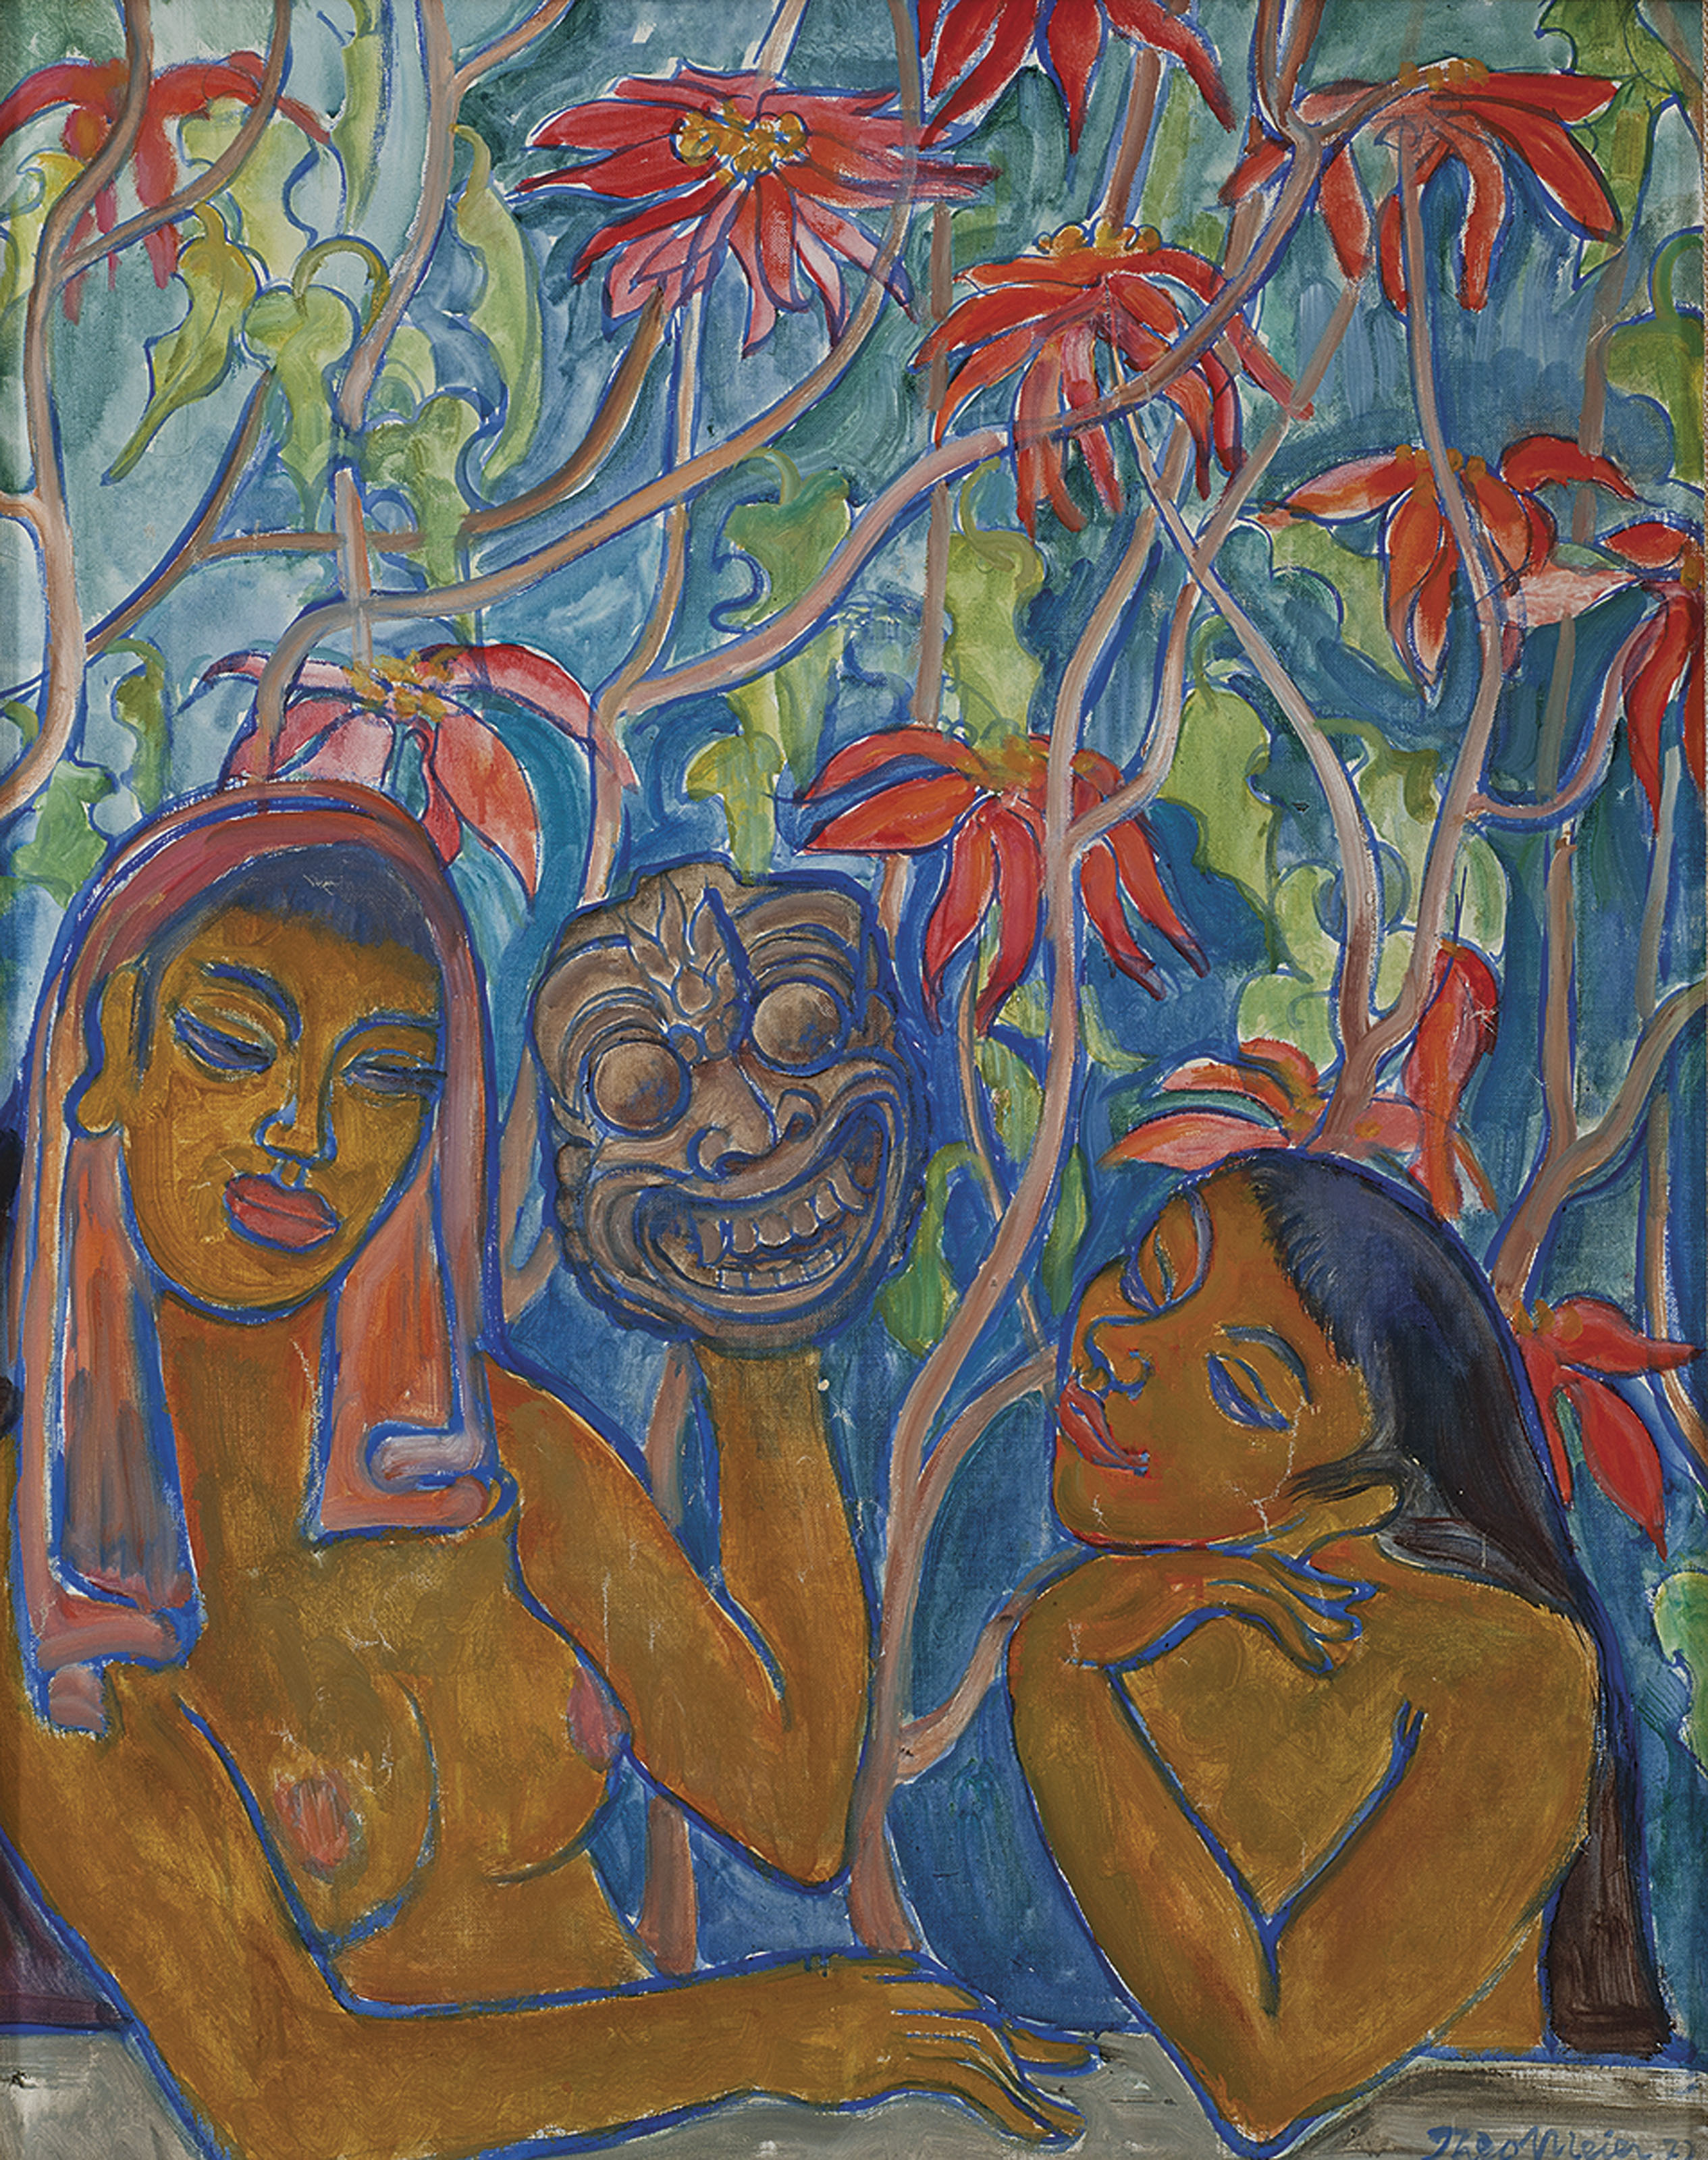 Two Women in a Garden with a Balinese Mask